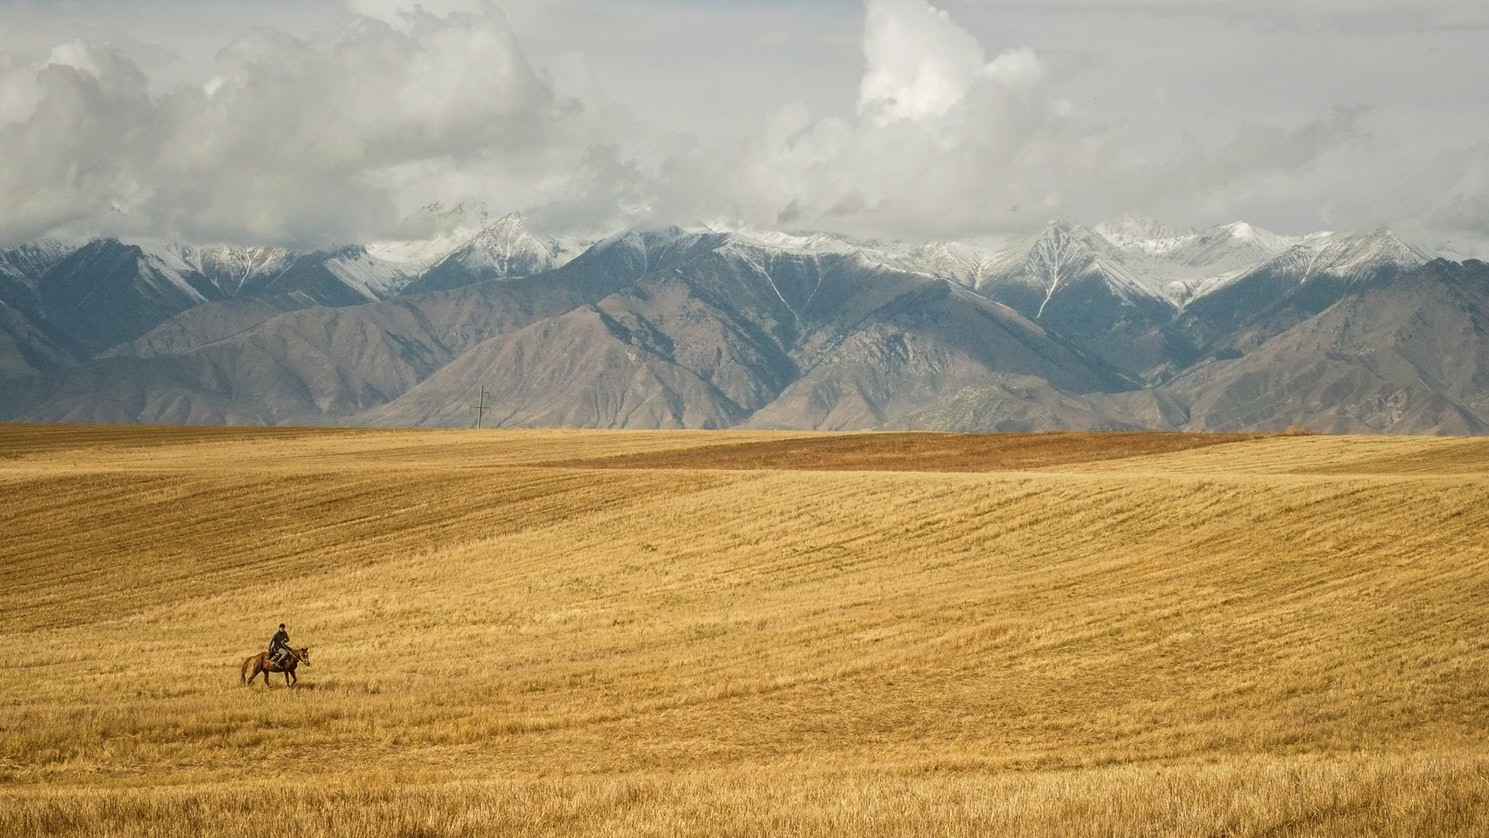 field of wheat and a cowboy